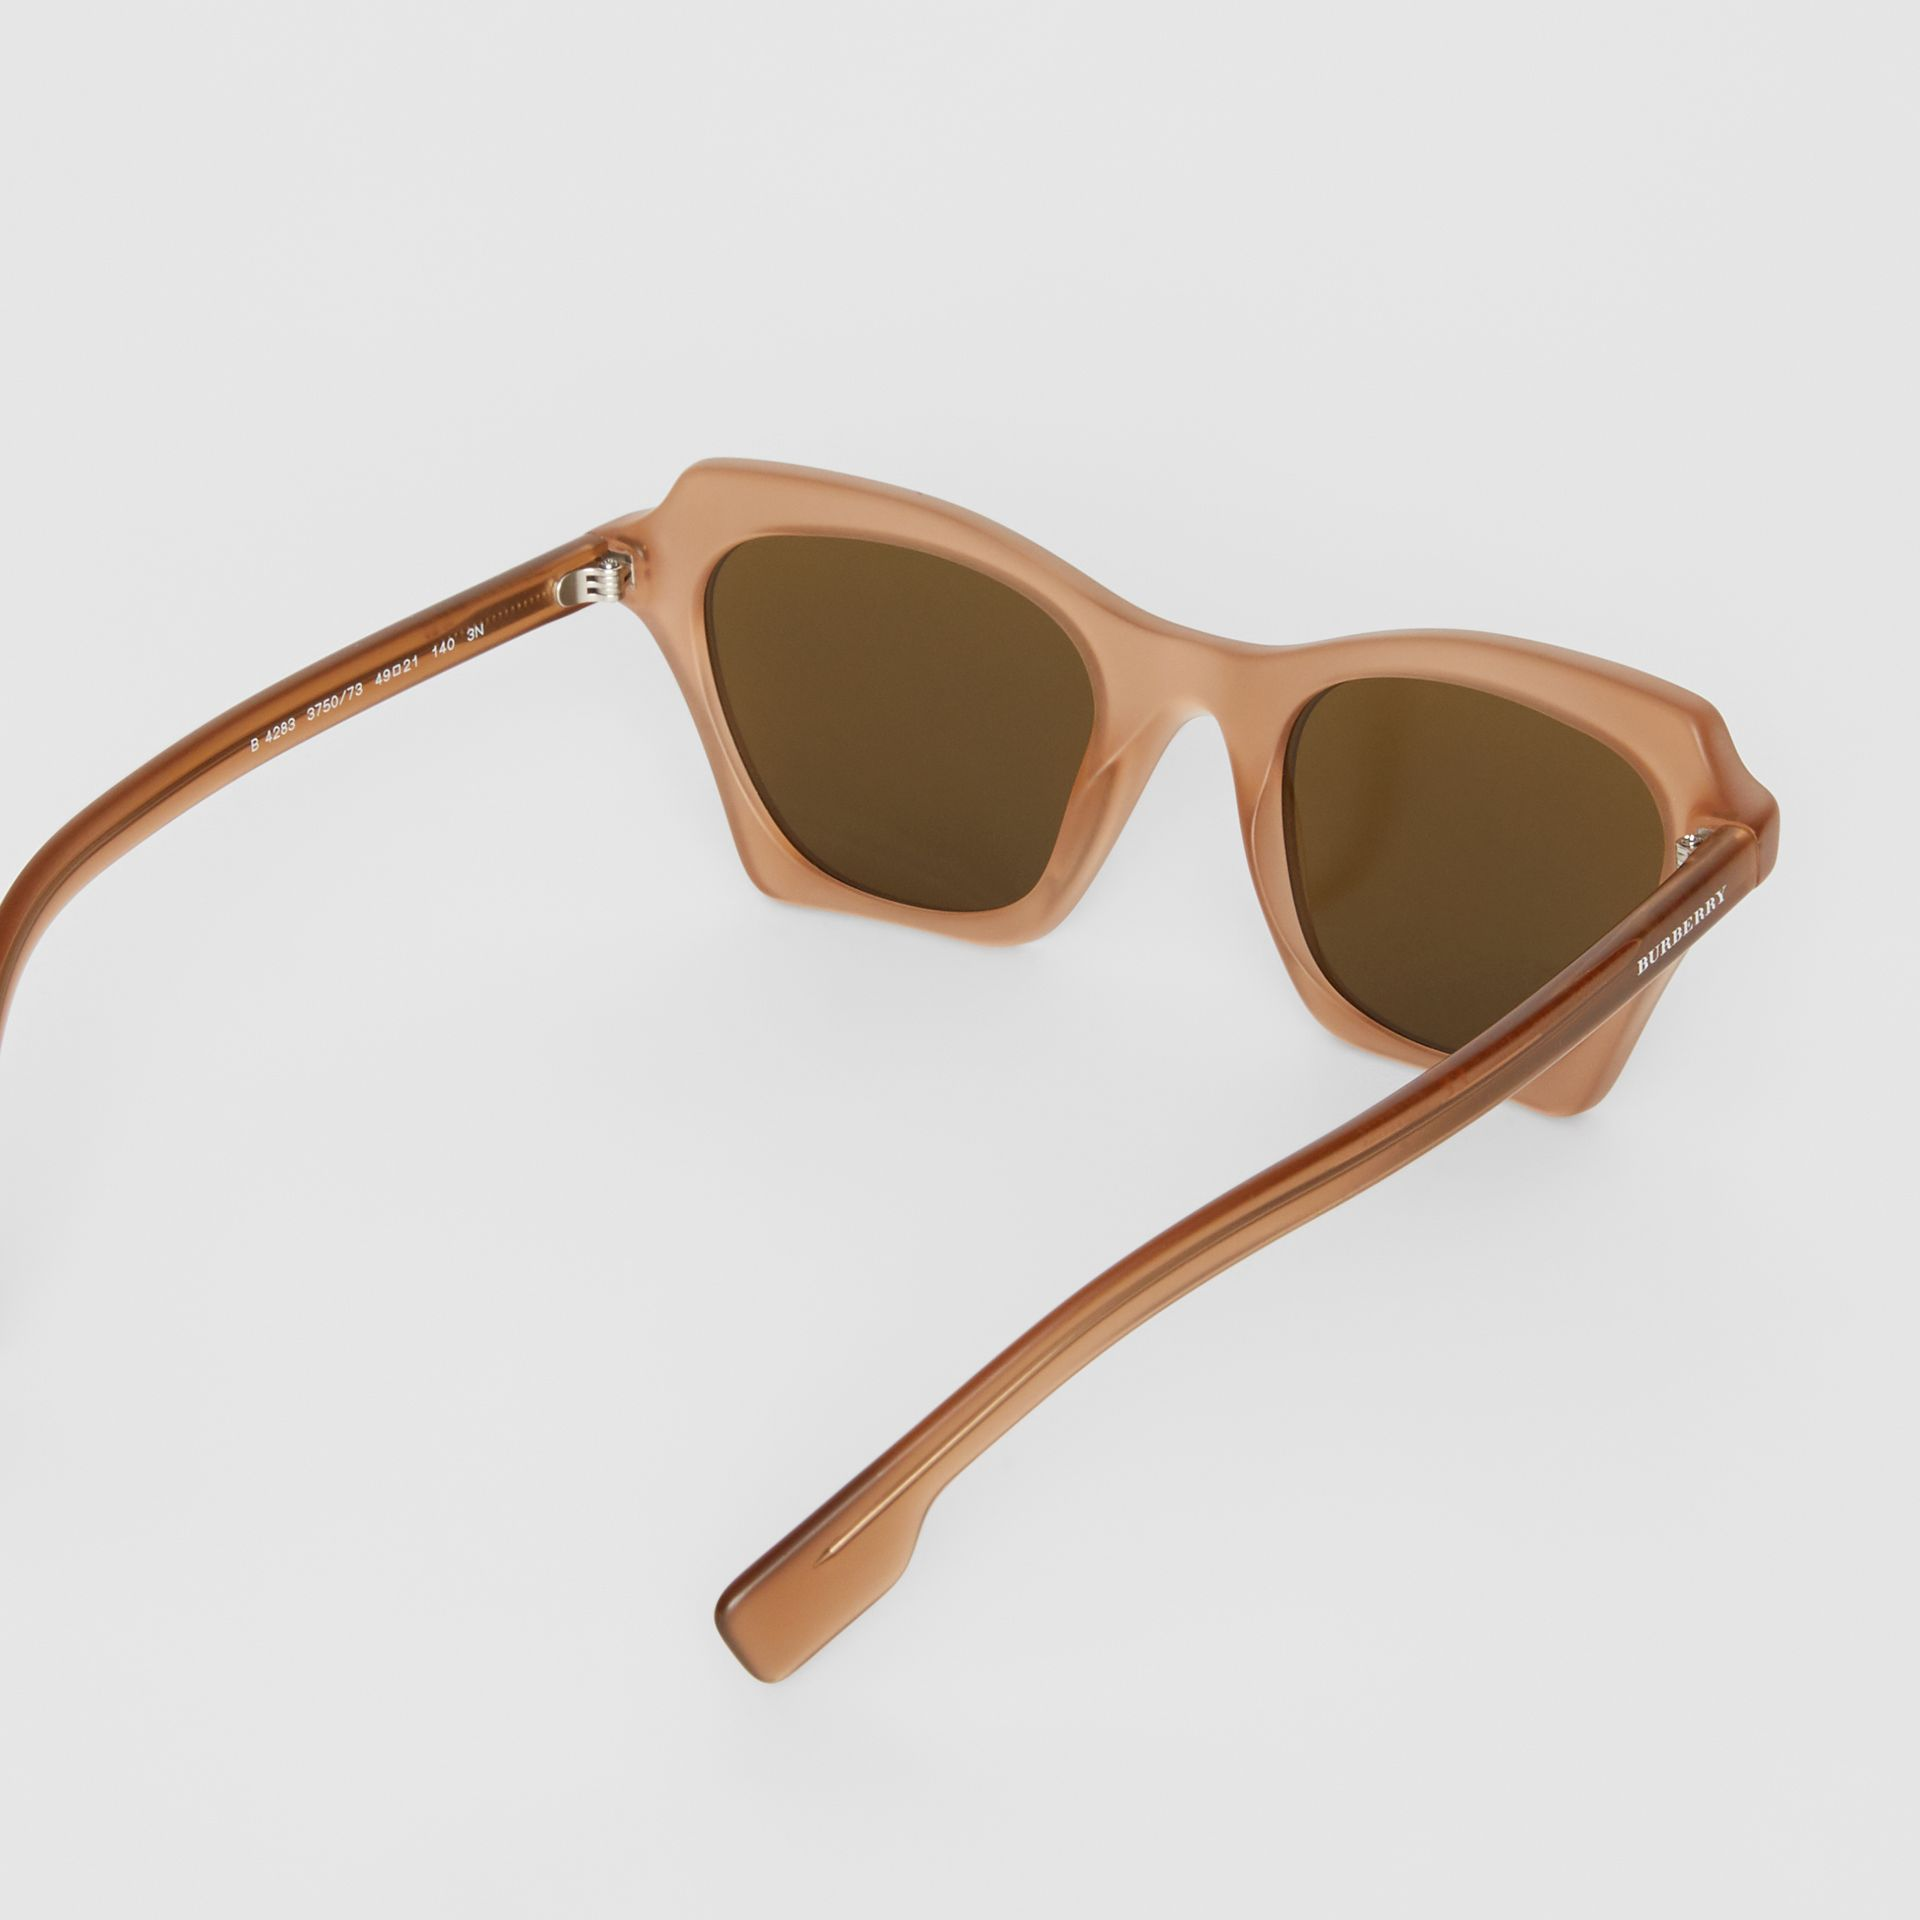 Butterfly Frame Sunglasses in Brown - Women | Burberry Australia - gallery image 4